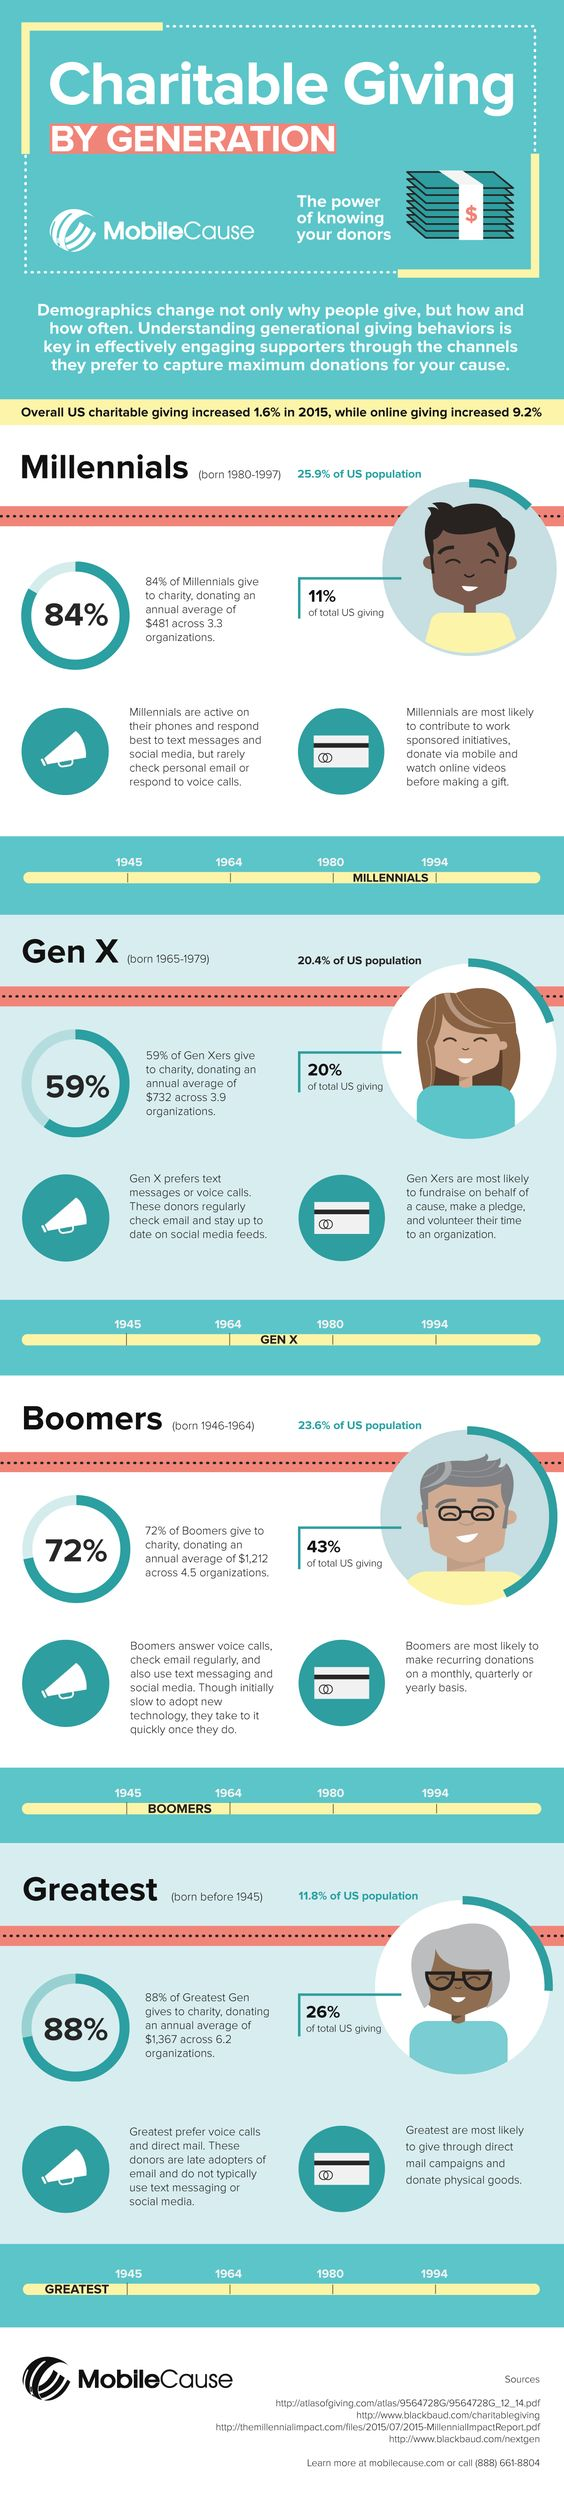 Charitable Giving By Generation Infographic